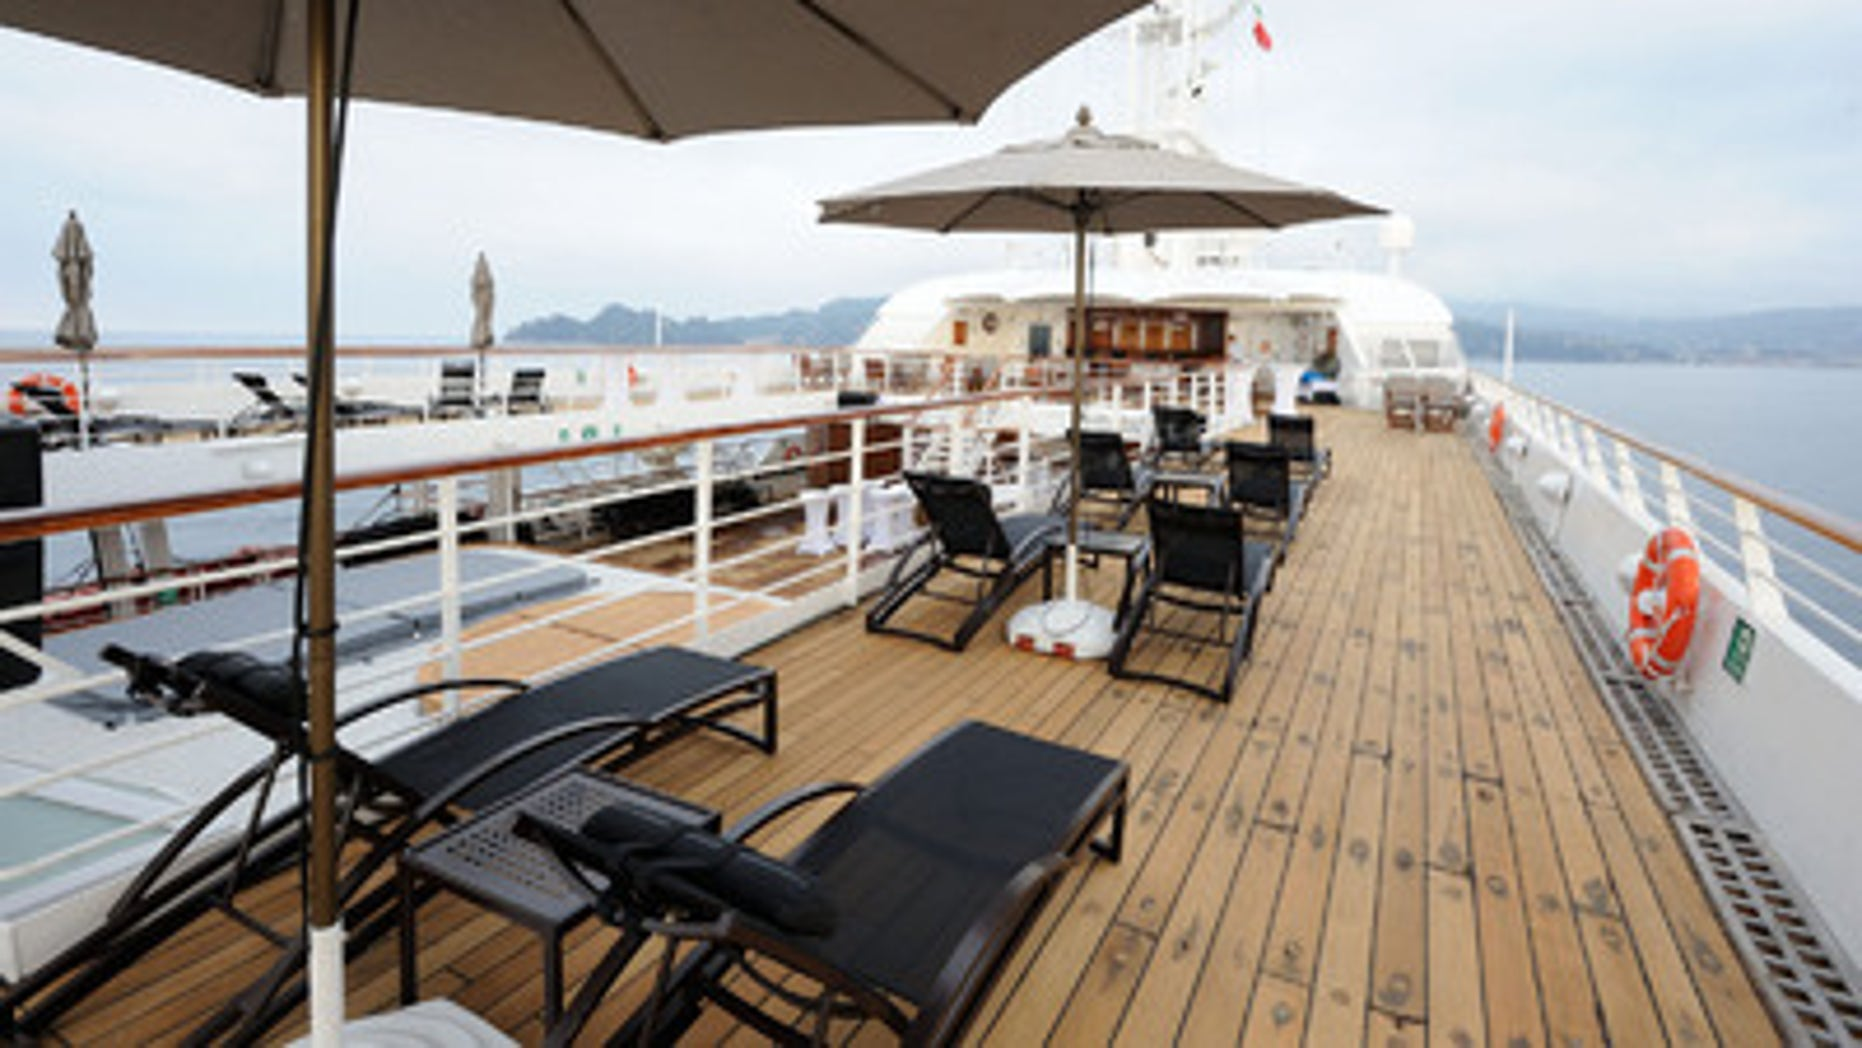 On deck of the Windstar Star Legend.